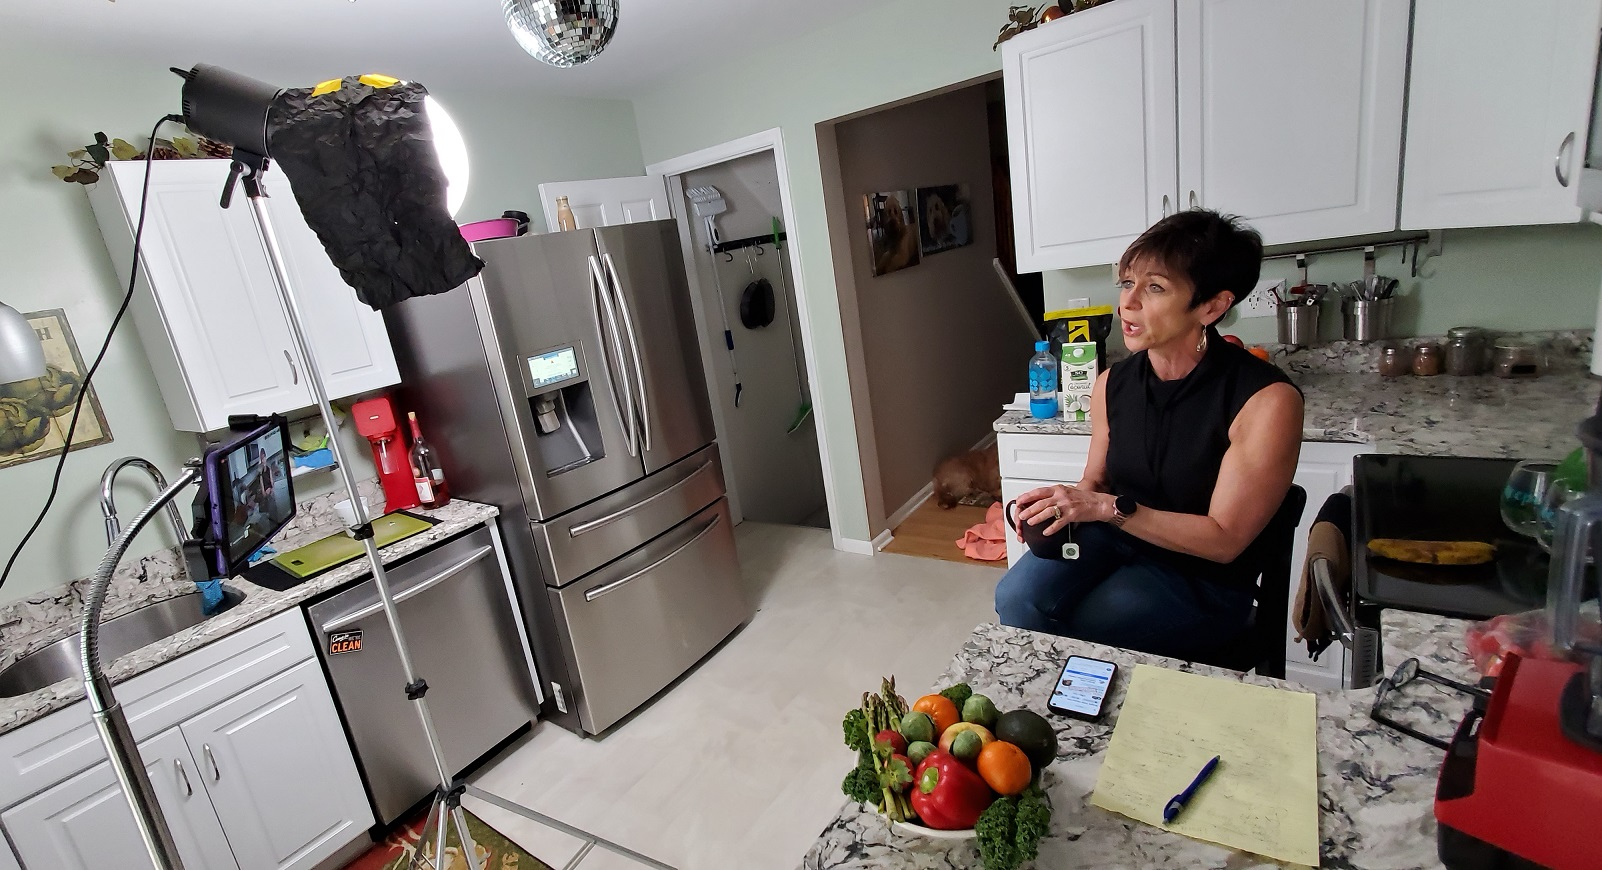 Sally Winchell, wellness director at Bright Side Opportunities Center, conducts an online diet and cooking class from her kitchen. (Source: George Winchell)